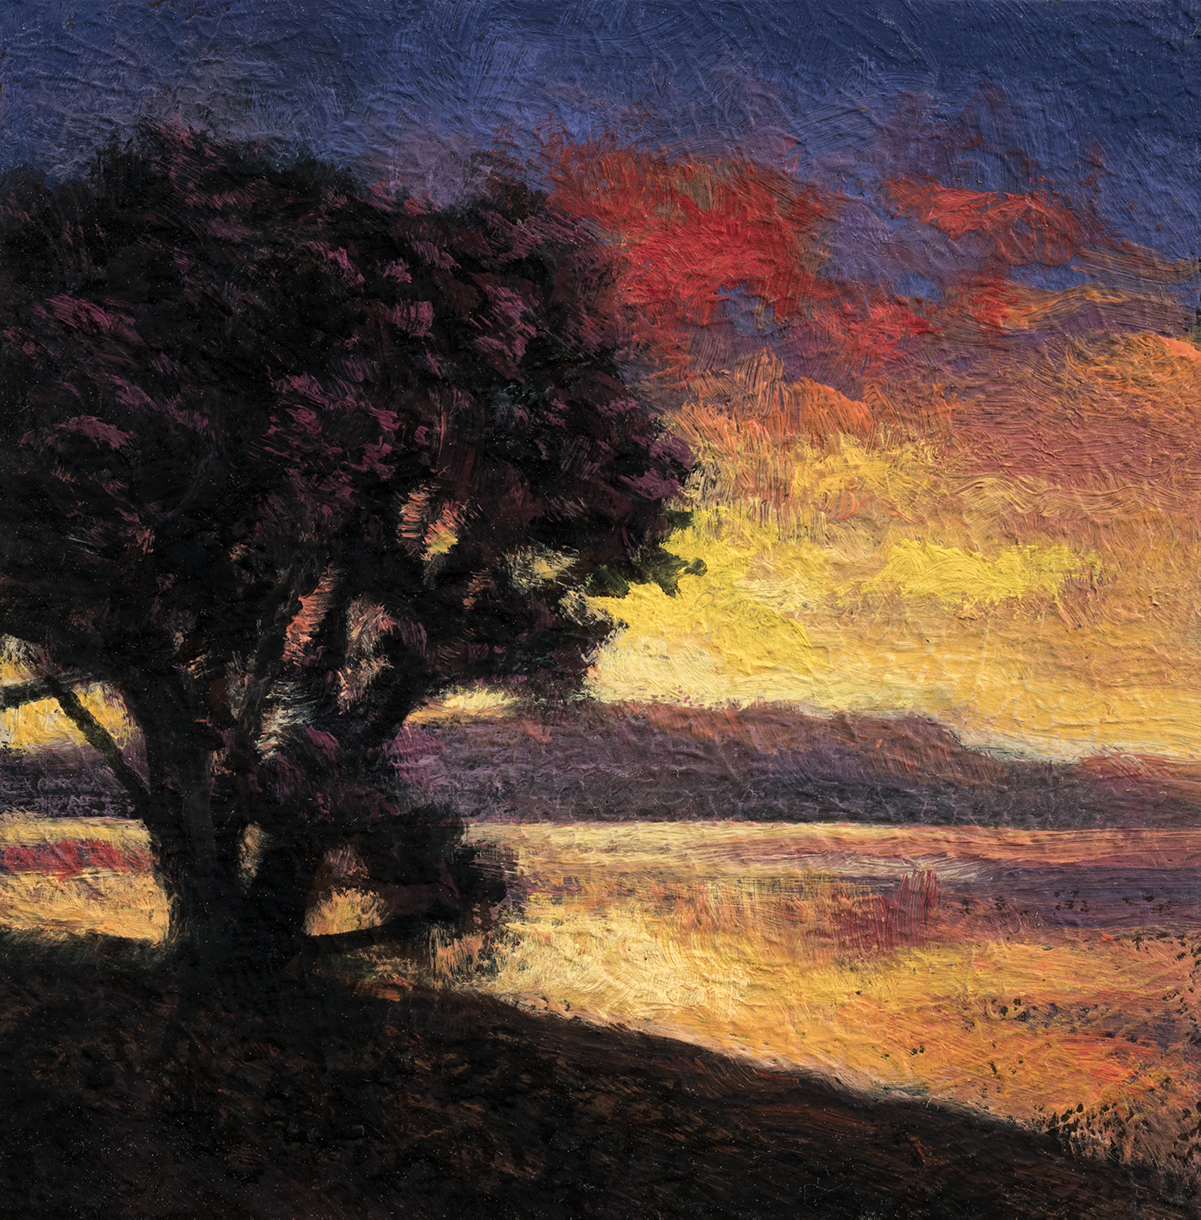 Morning Sojourn by M Francis McCarthy - 3½x3½ Oil on Wood Panel